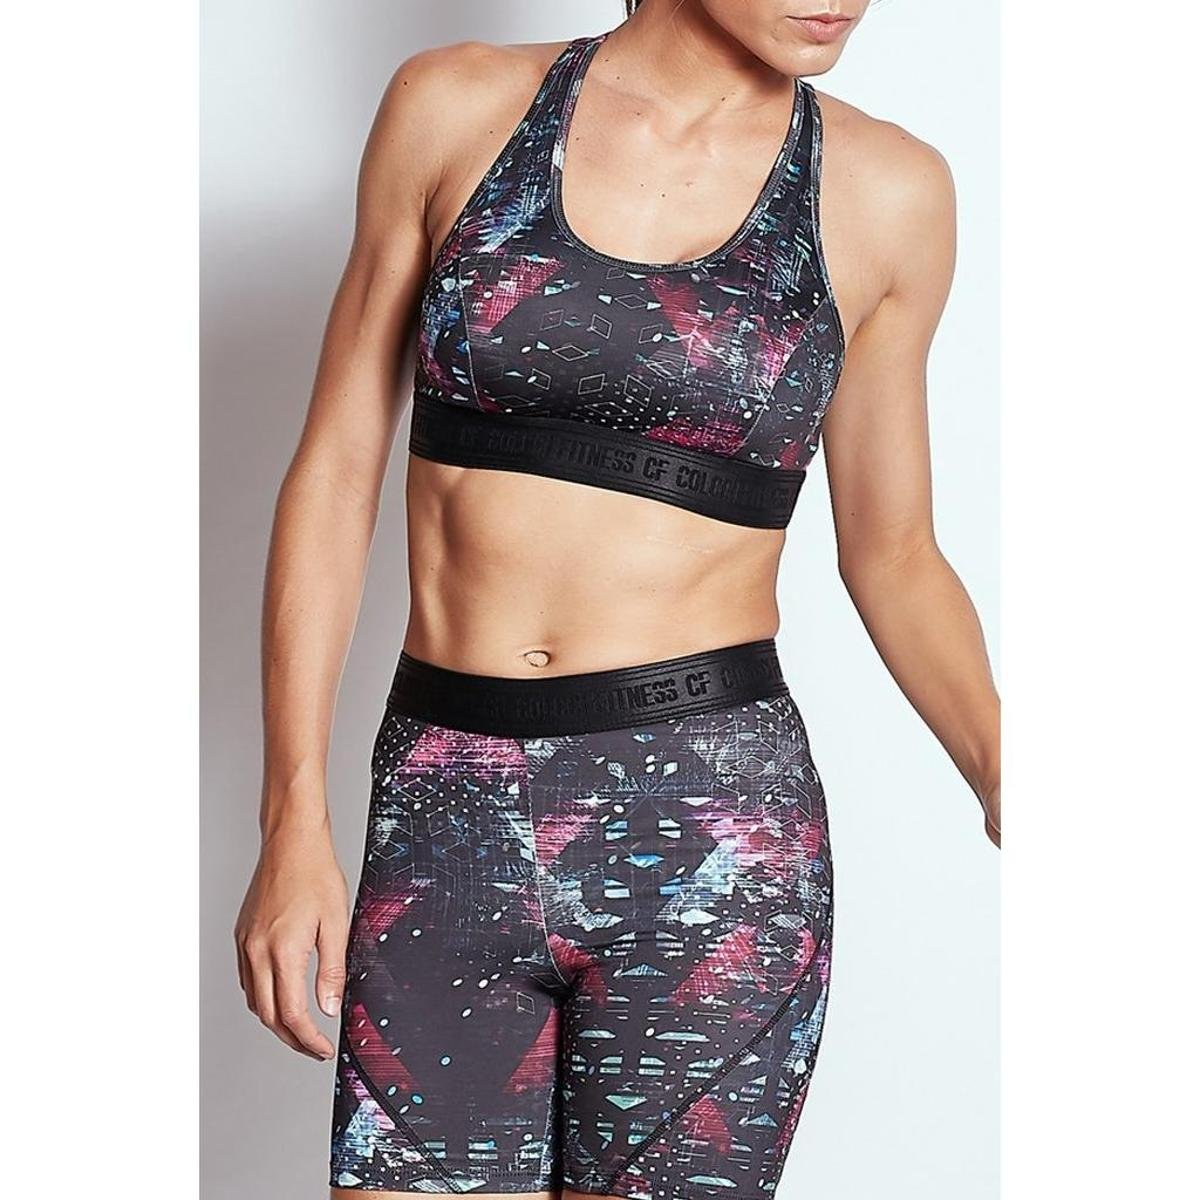 Top Estampado Colcci Fitness Preto Top Colcci 00465700248 dIwgqW